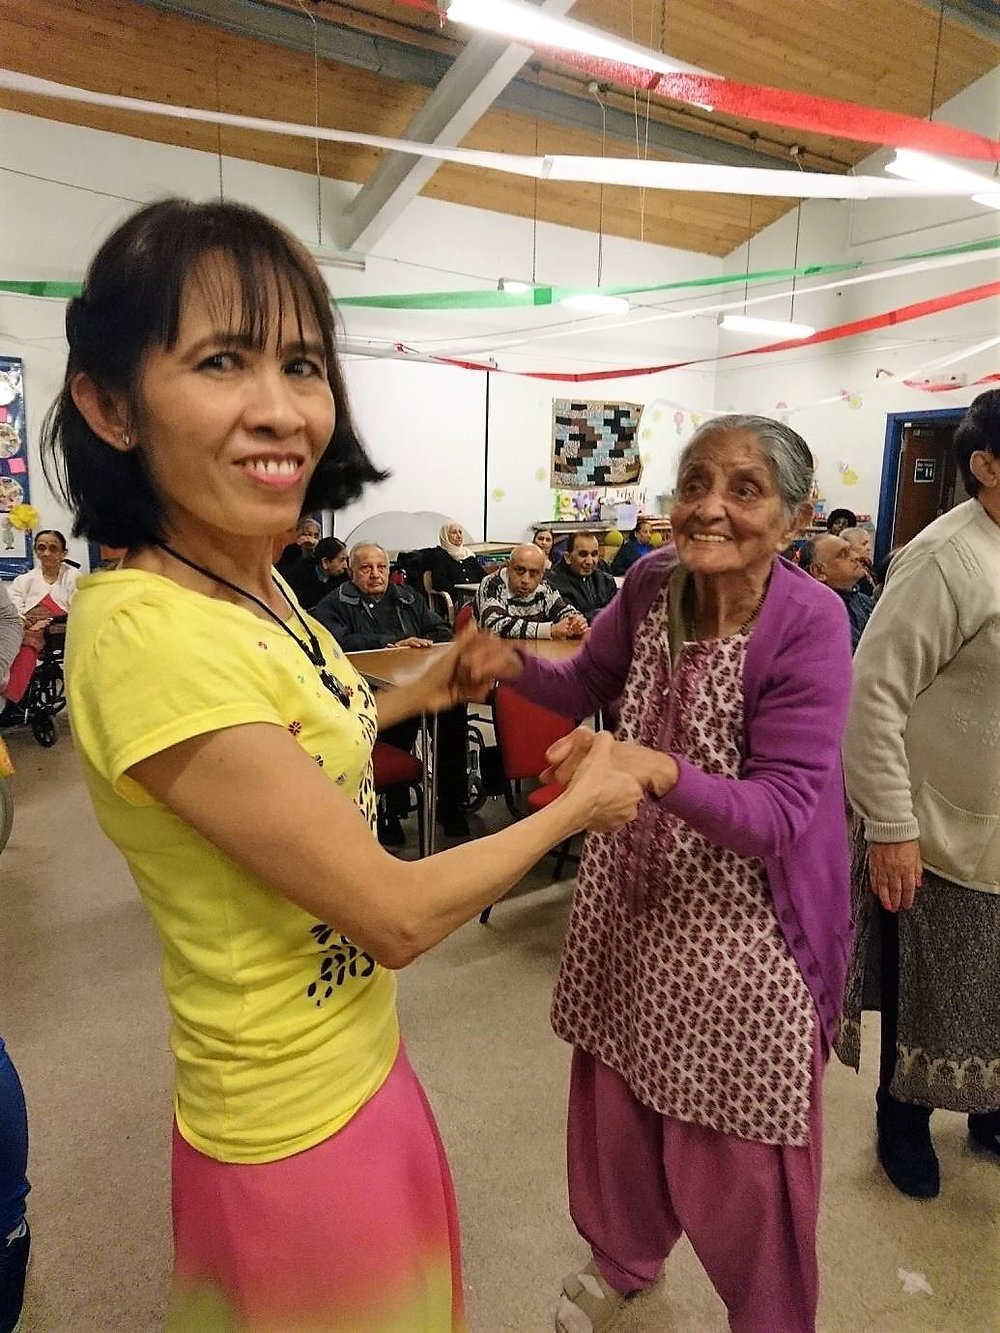 Noo (staff) and Service user dancing (left to right)